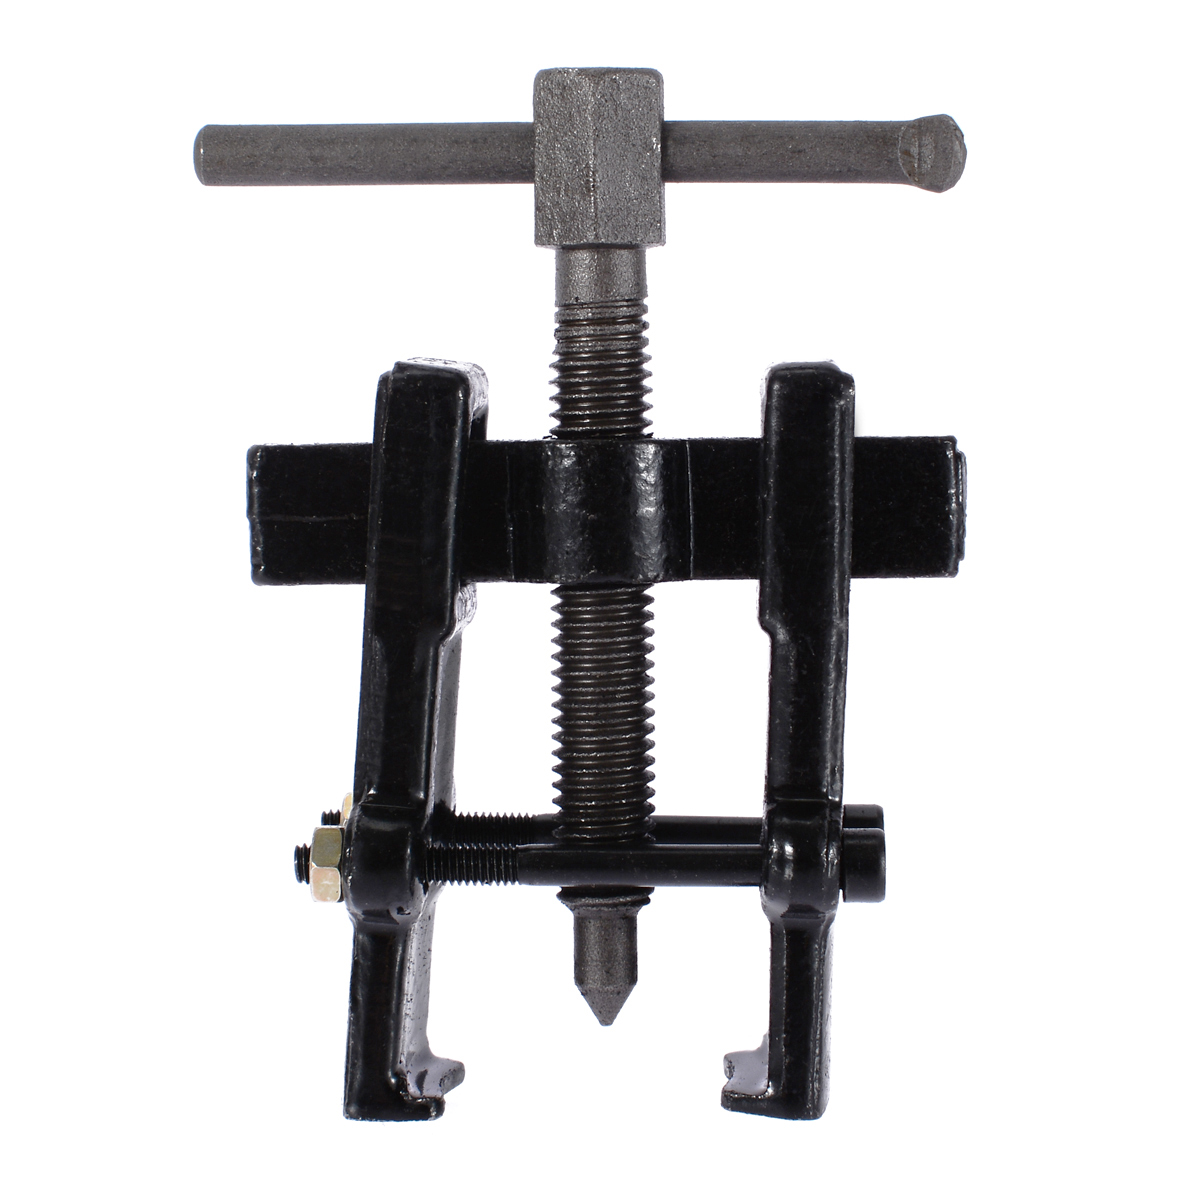 Hot Sale 1 <font><b>Set</b></font> Two Jaw Gear Pulley Bearing Puller 2